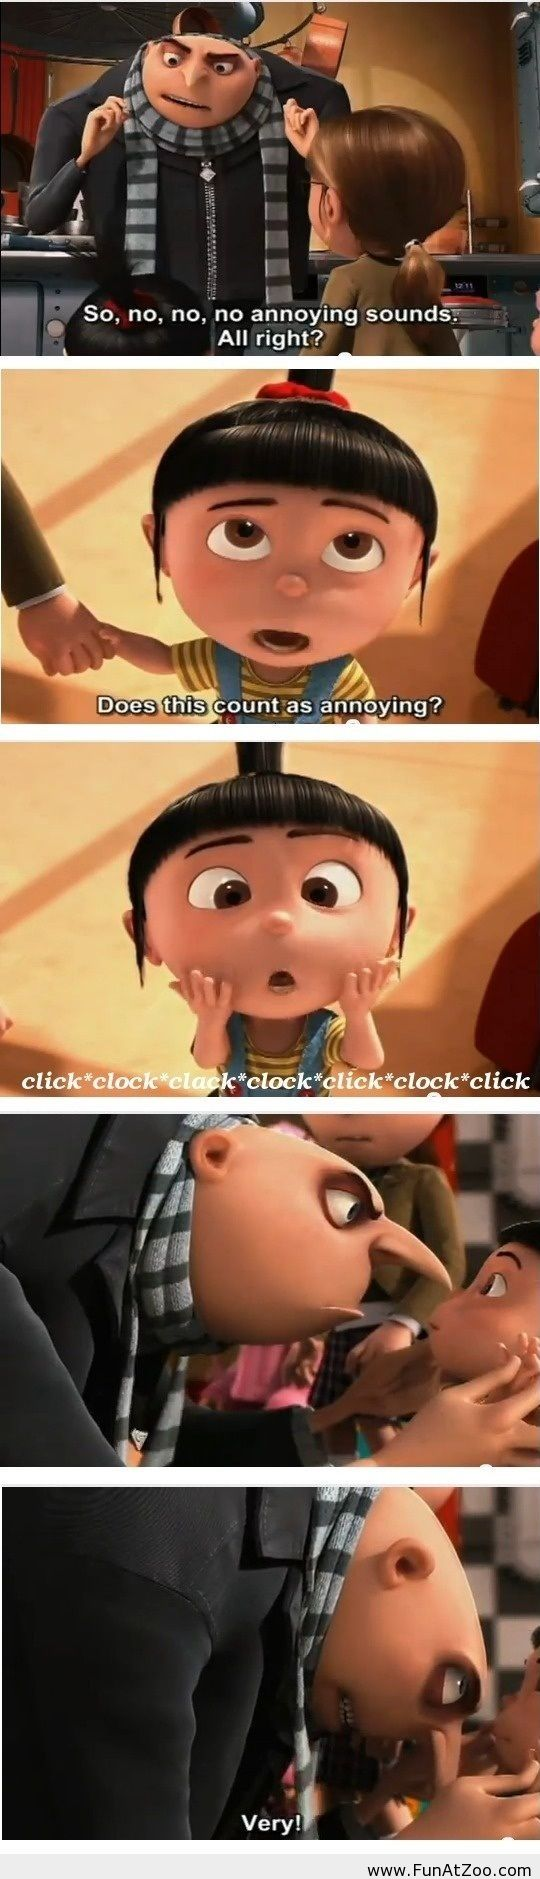 This little girl from Despicable Me is awesome - Funny Picture